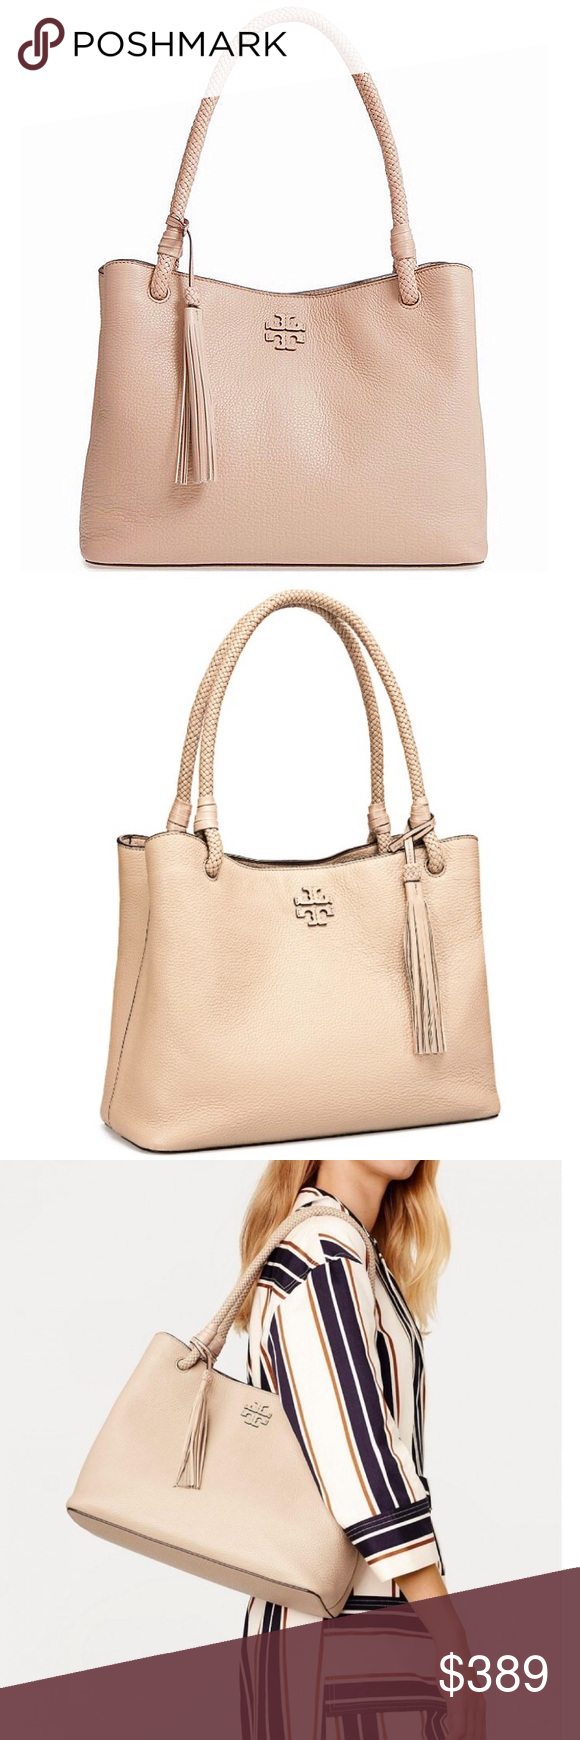 b96d442e6196 NWT Tory Burch Triple-Compartment Tote+Gift Bag 100% Authentic! Brand New